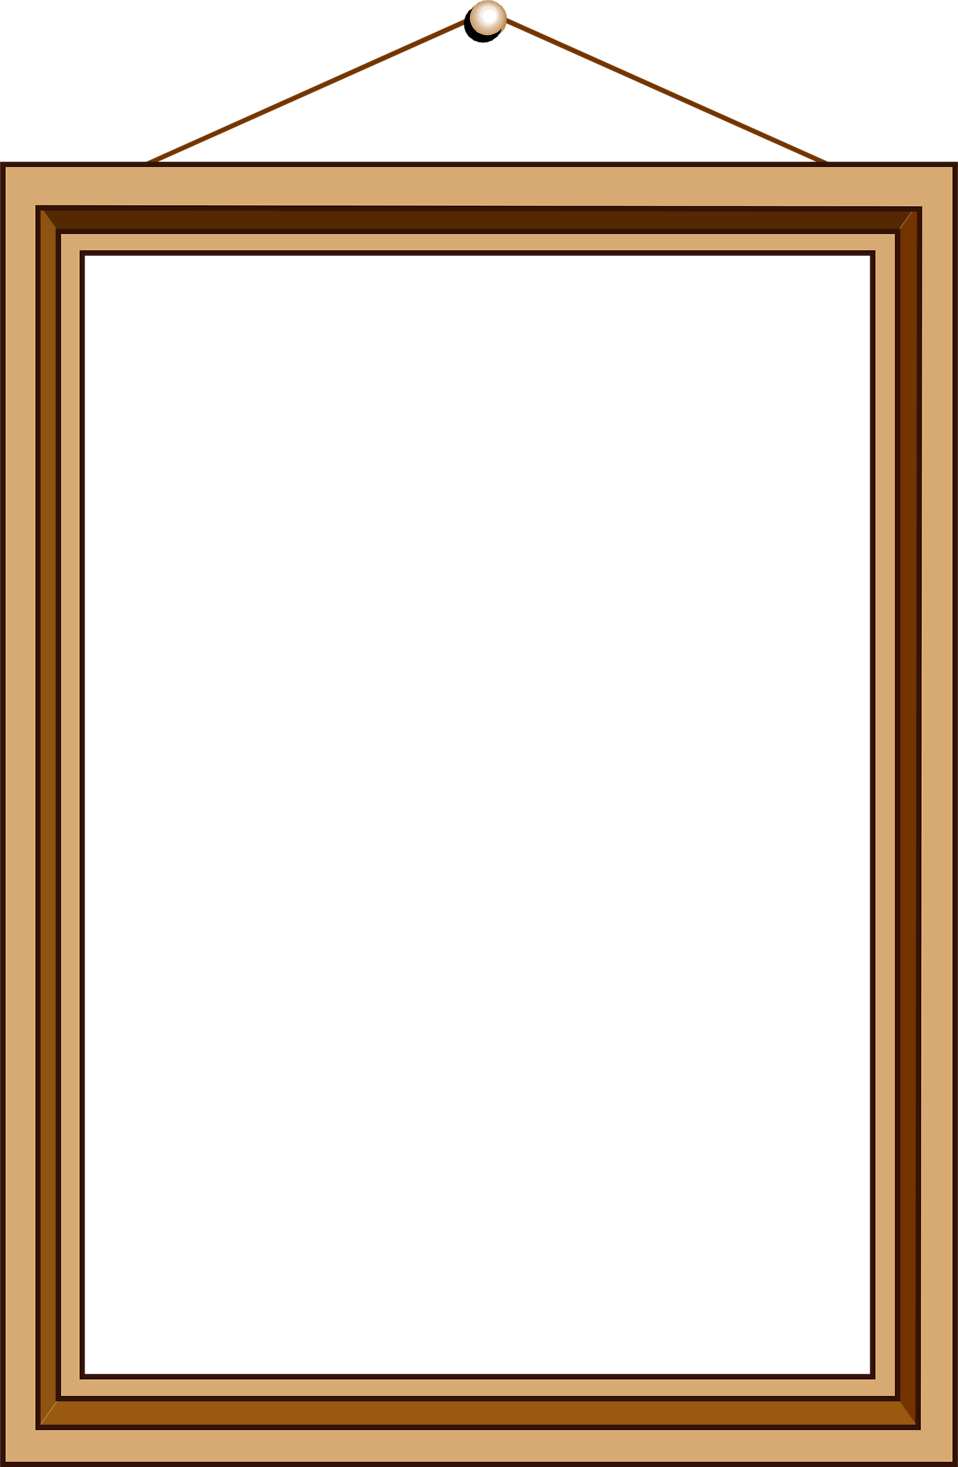 Blank picture frame png. Free stock photo illustration